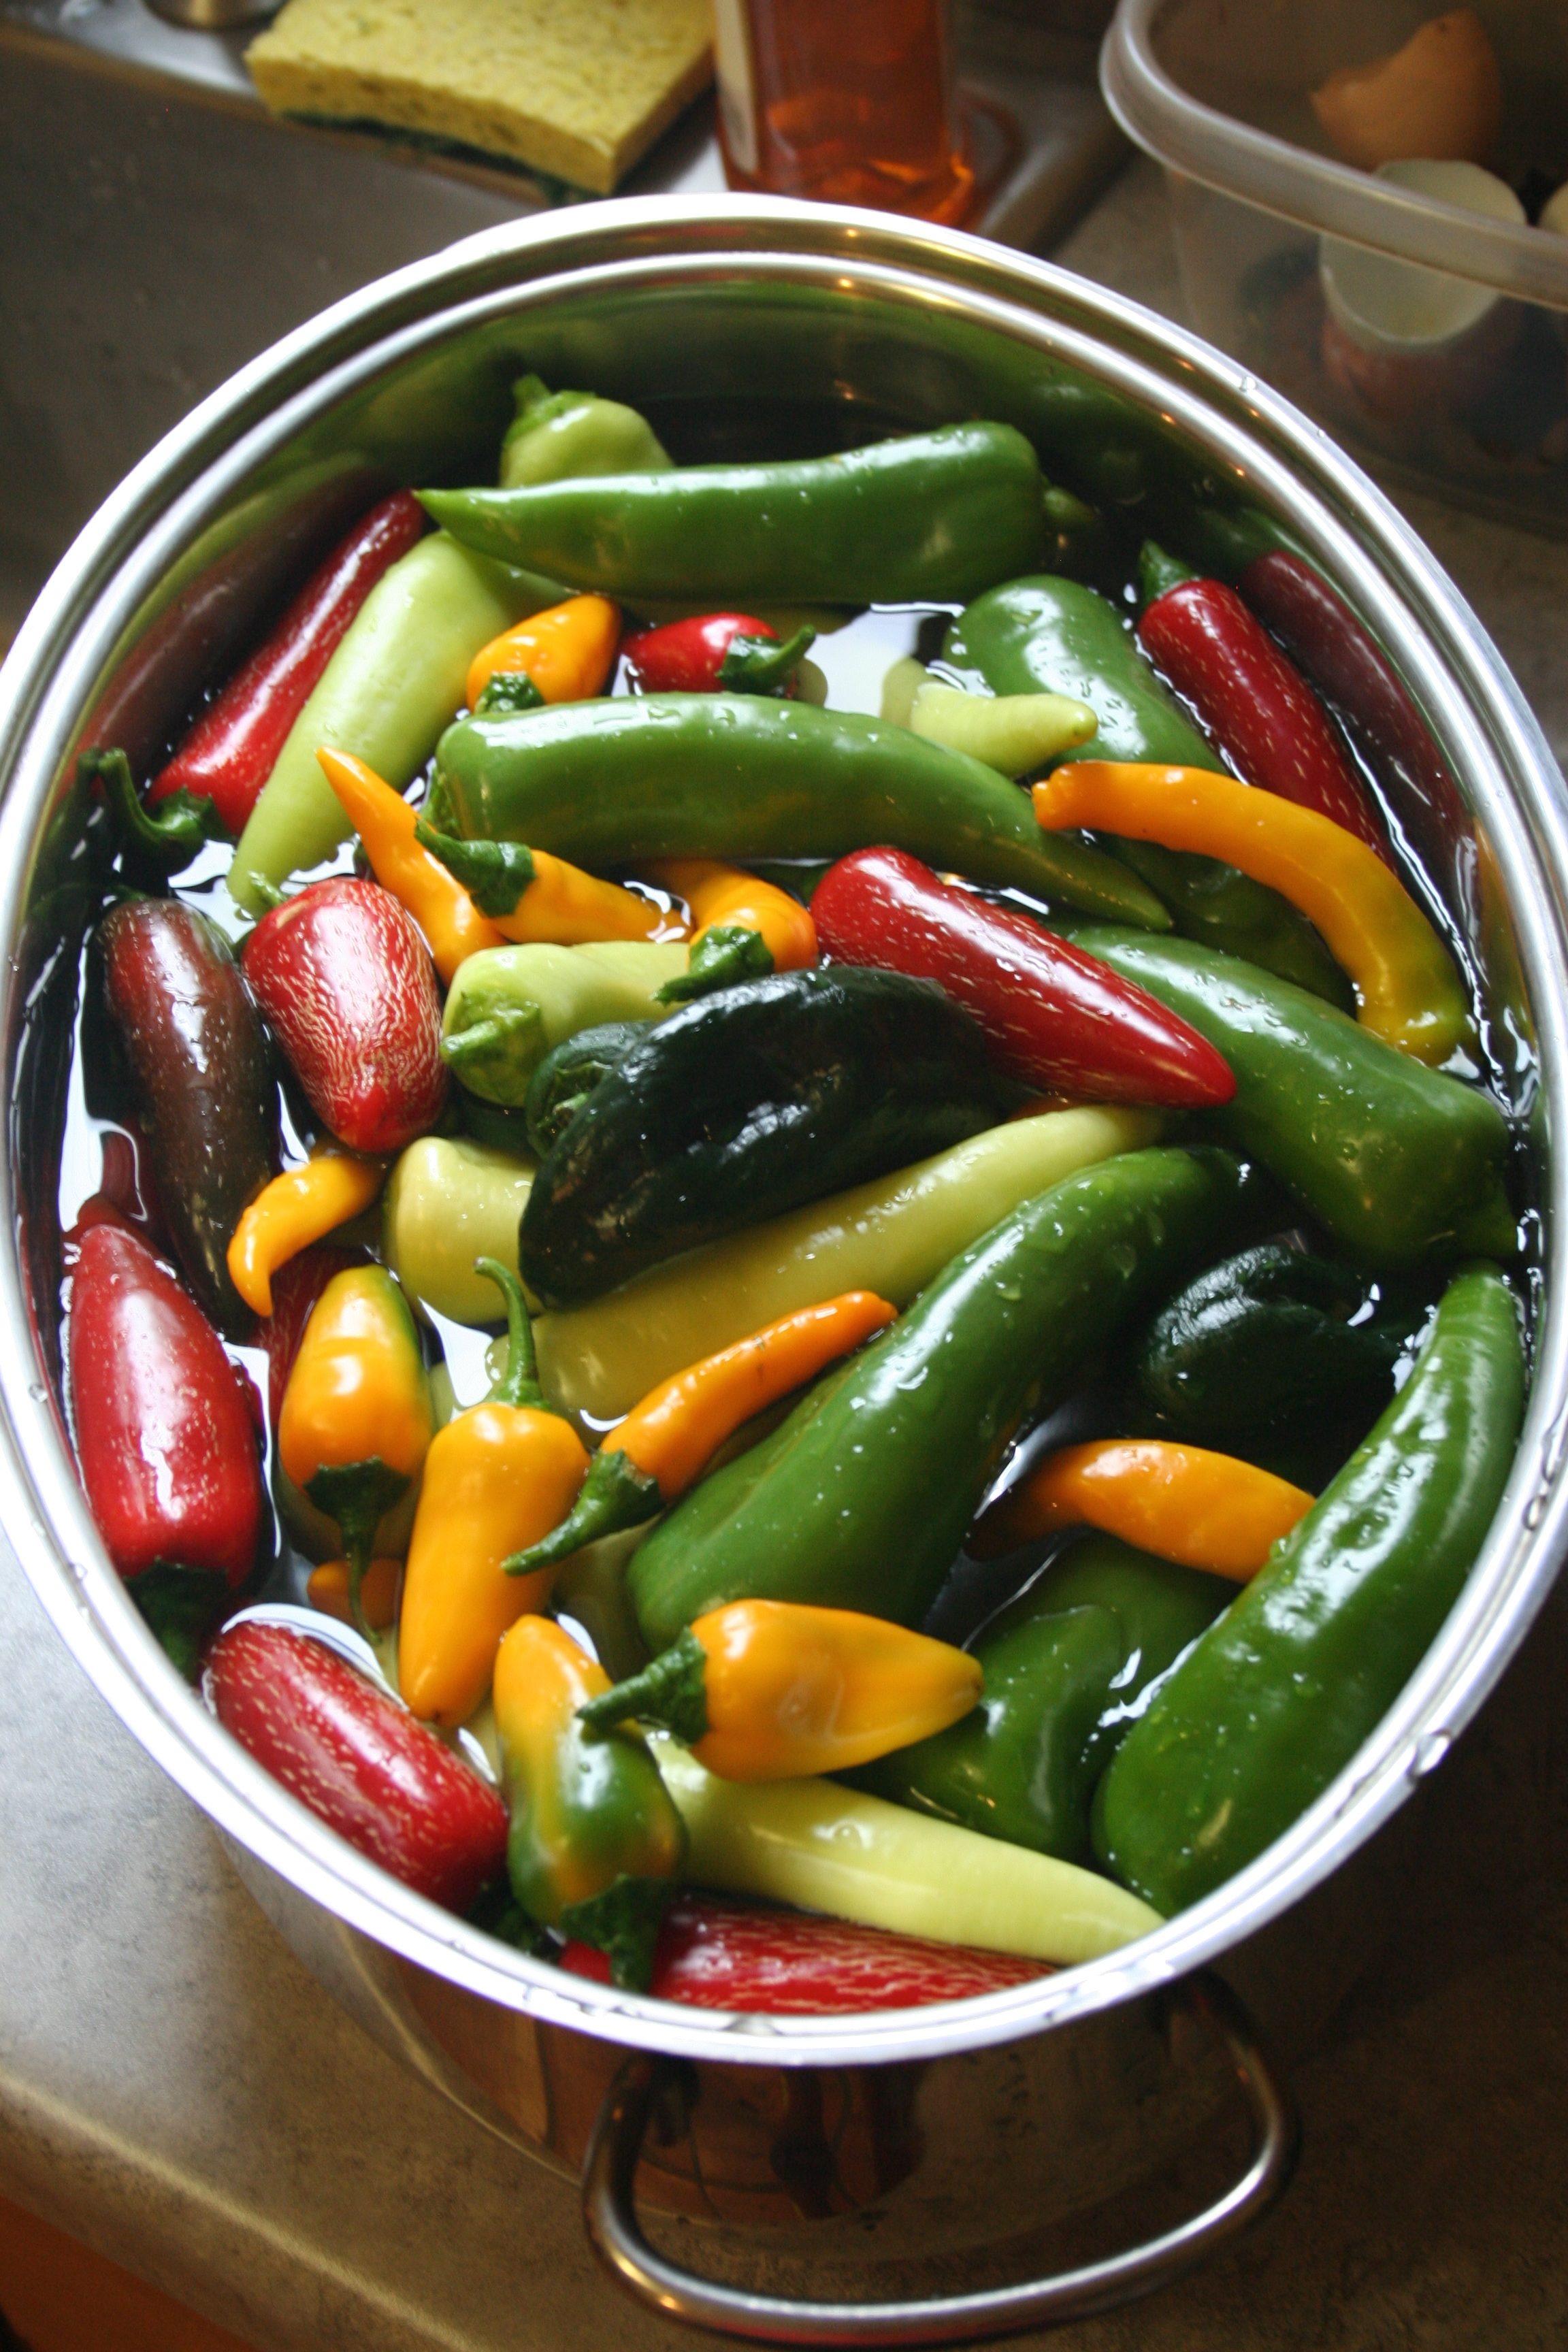 Jalafuegos, Pueblo Chiles, Hungarian Wax, Anchos and some yellow mutts I grew from saved seed.